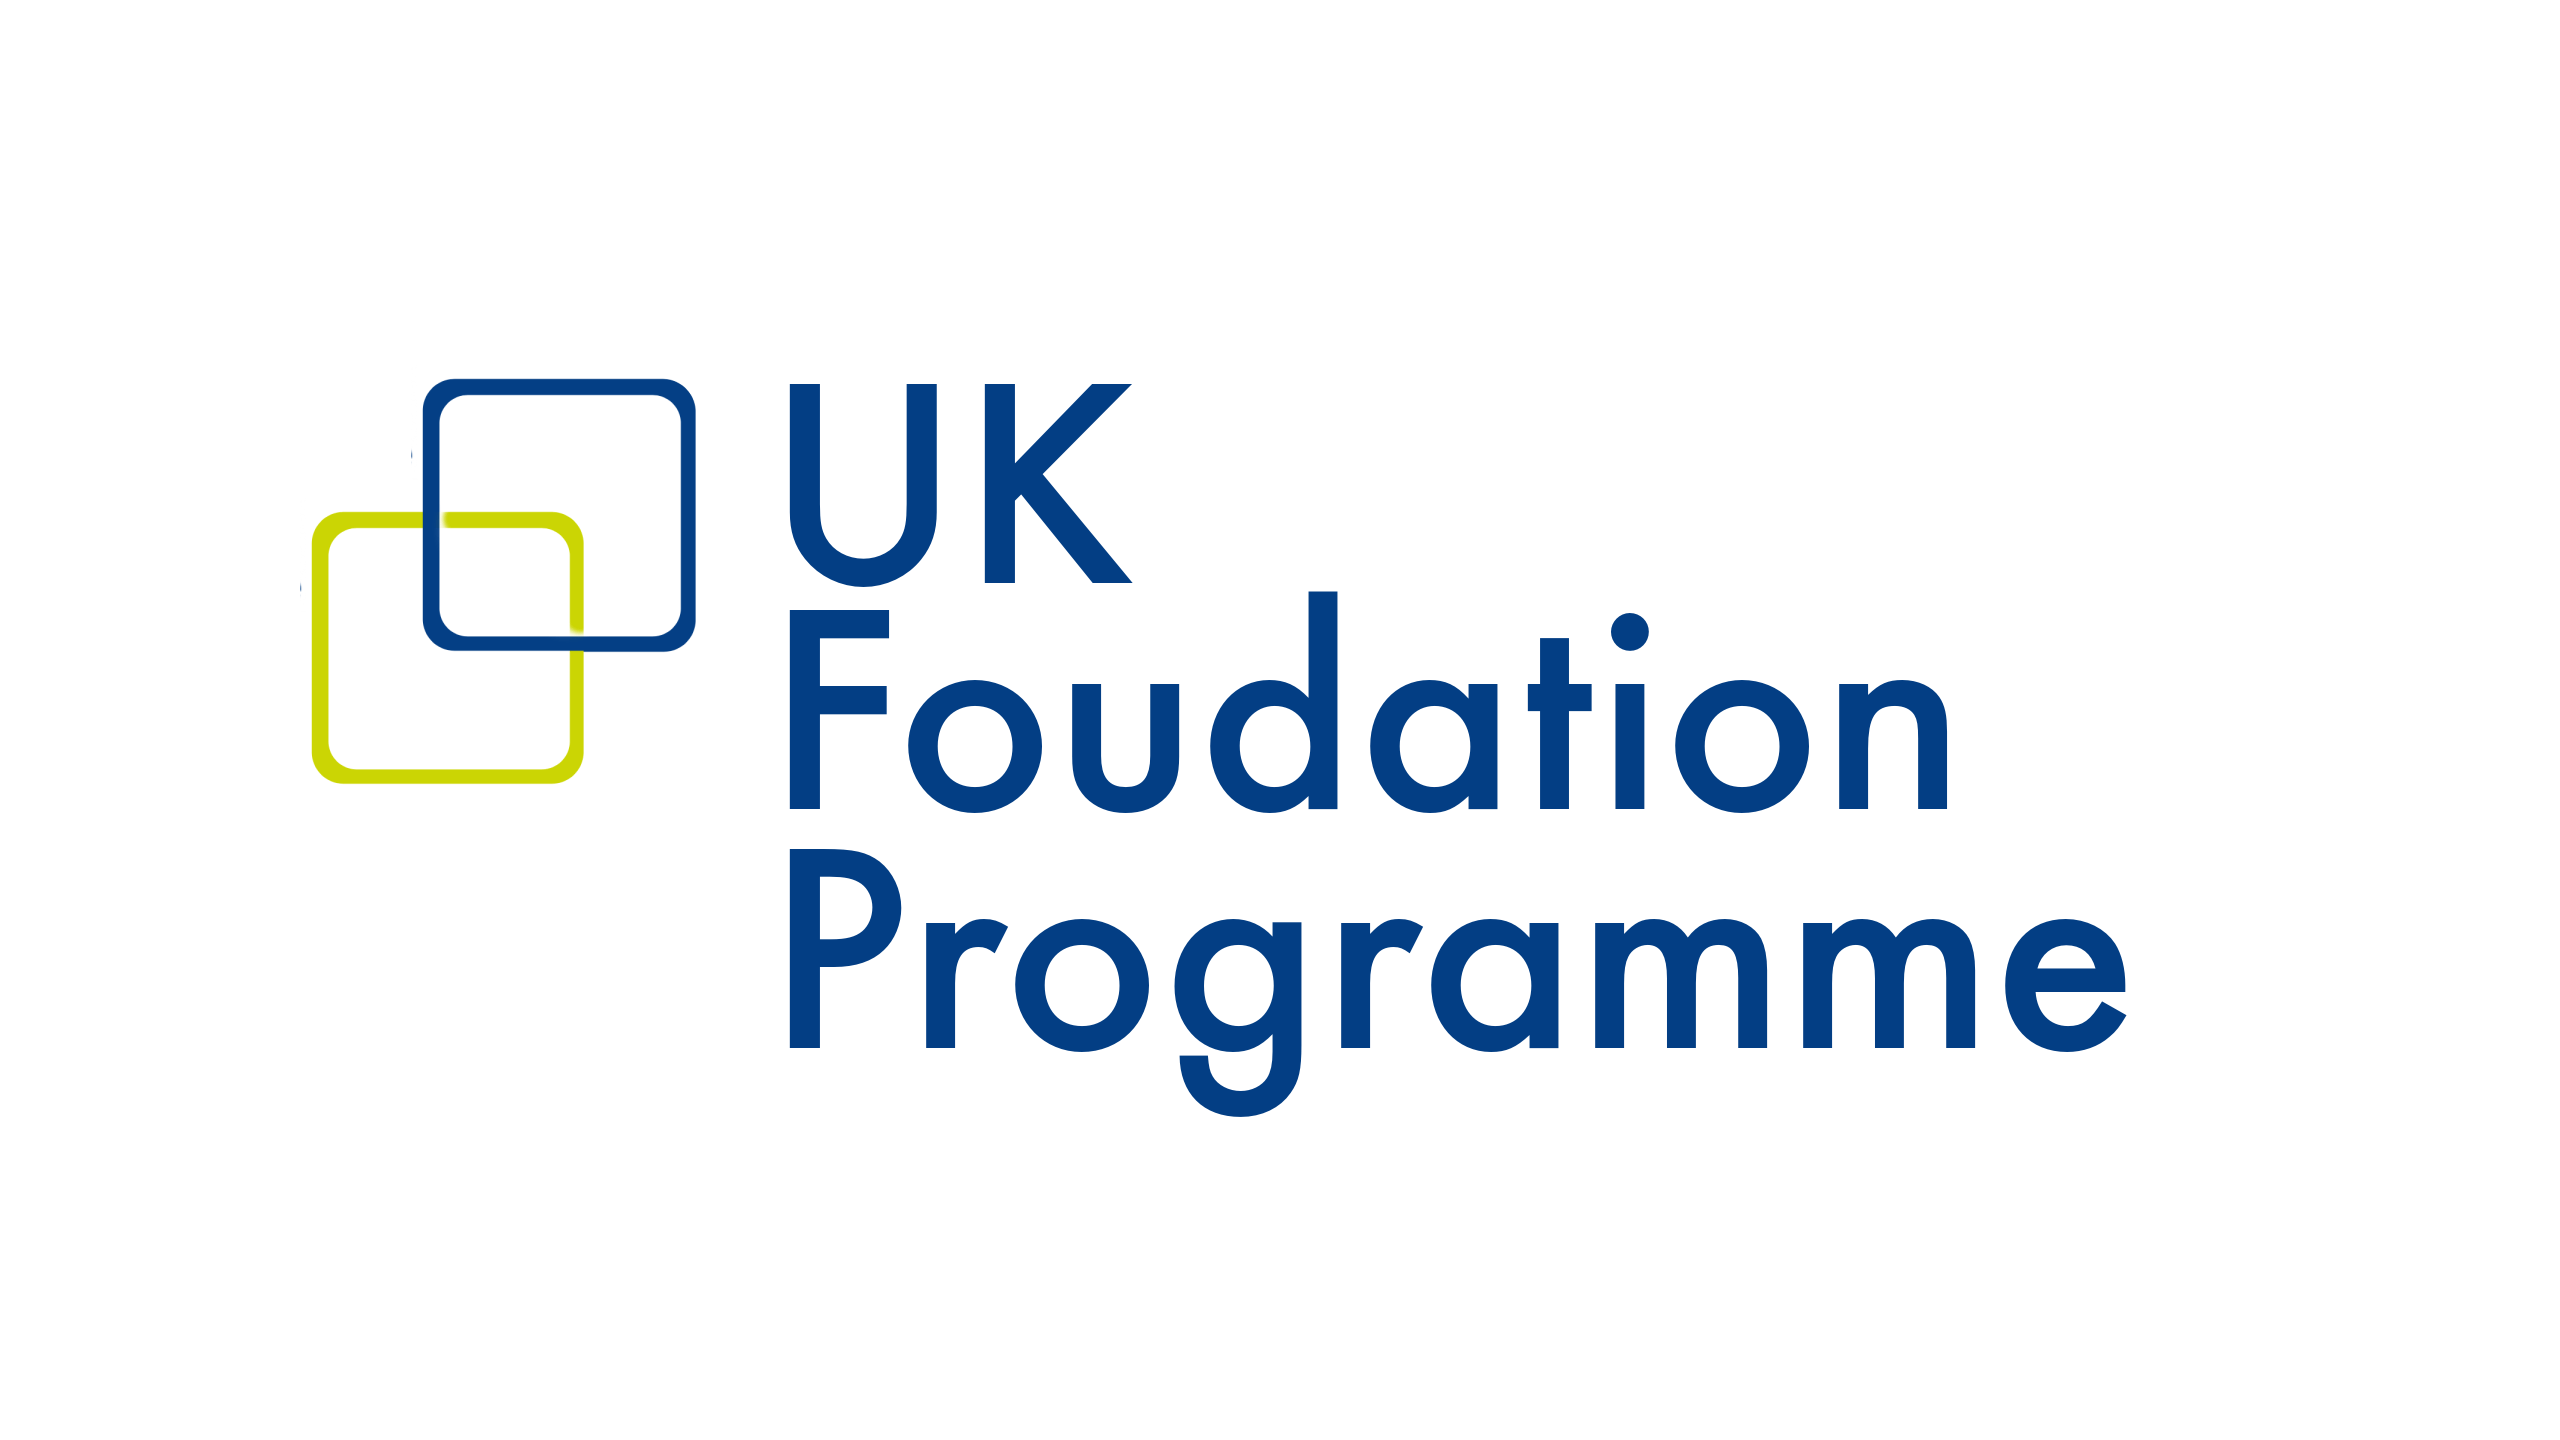 The logo for NHS UK Foundation Programme IELTS: